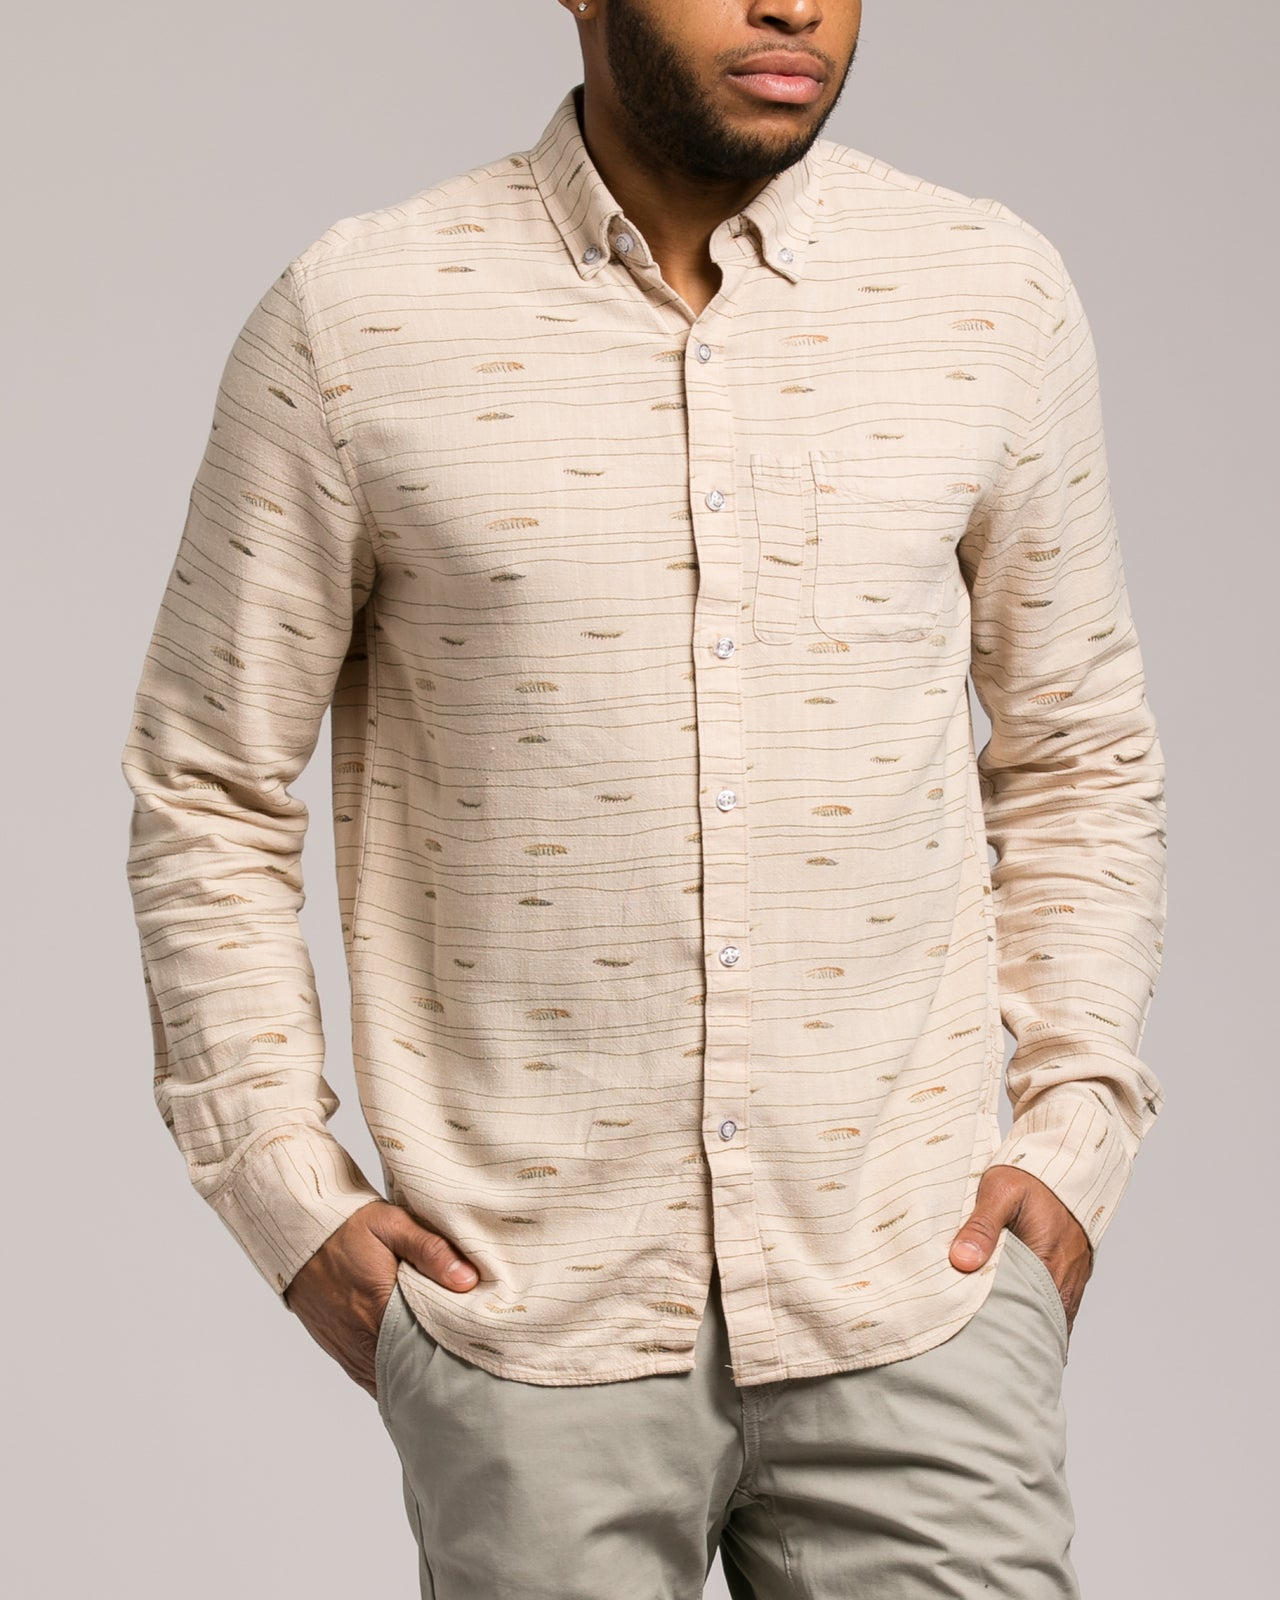 Feather Print Shirt - Color: Beige | Beige